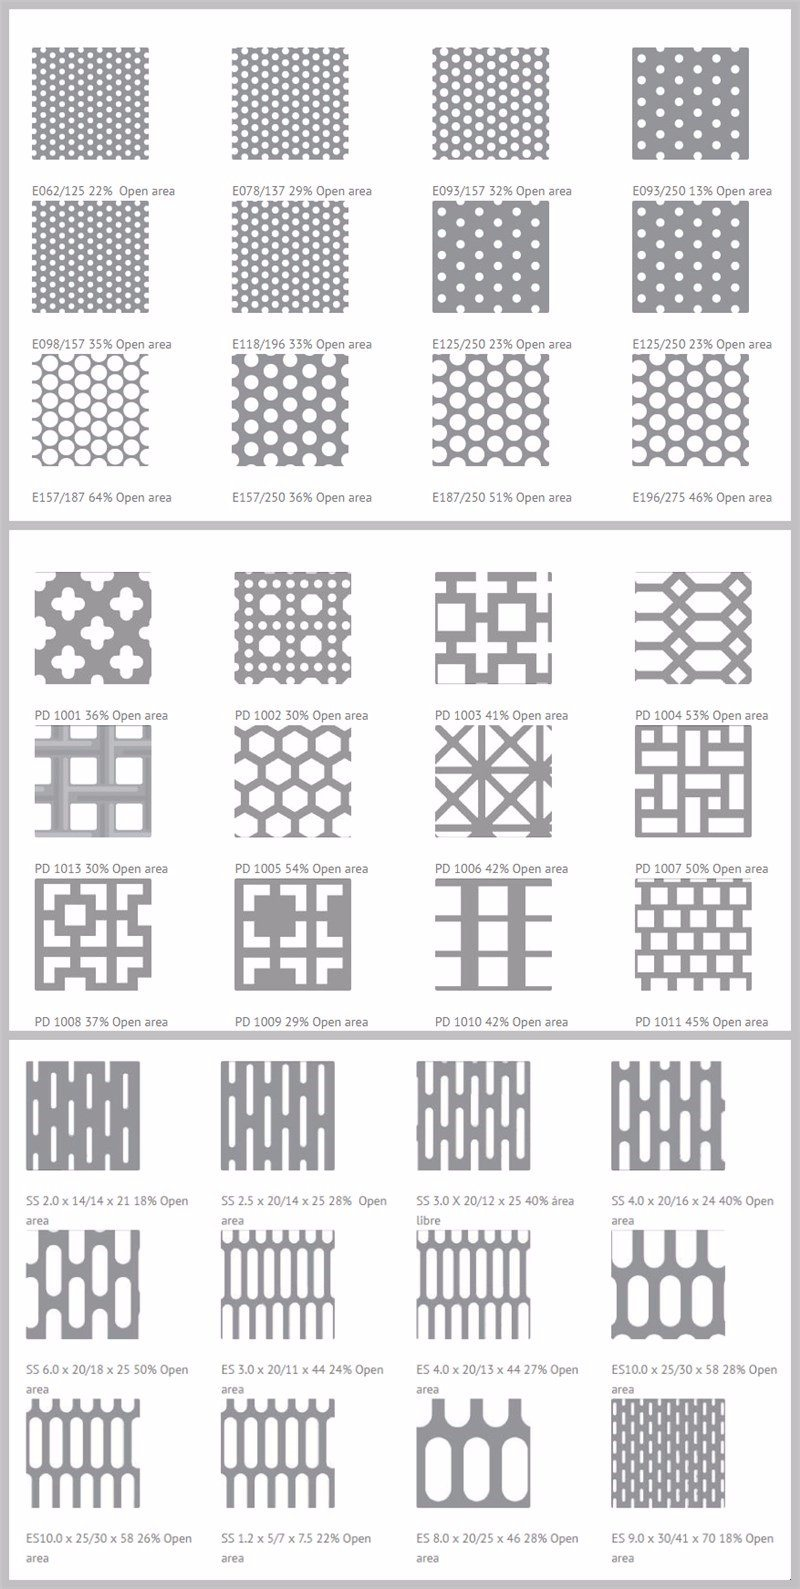 PVC-Coated/Galvanized/Stainless Steel Perforated Sheet Metal Plates in Various Shapes and Materials